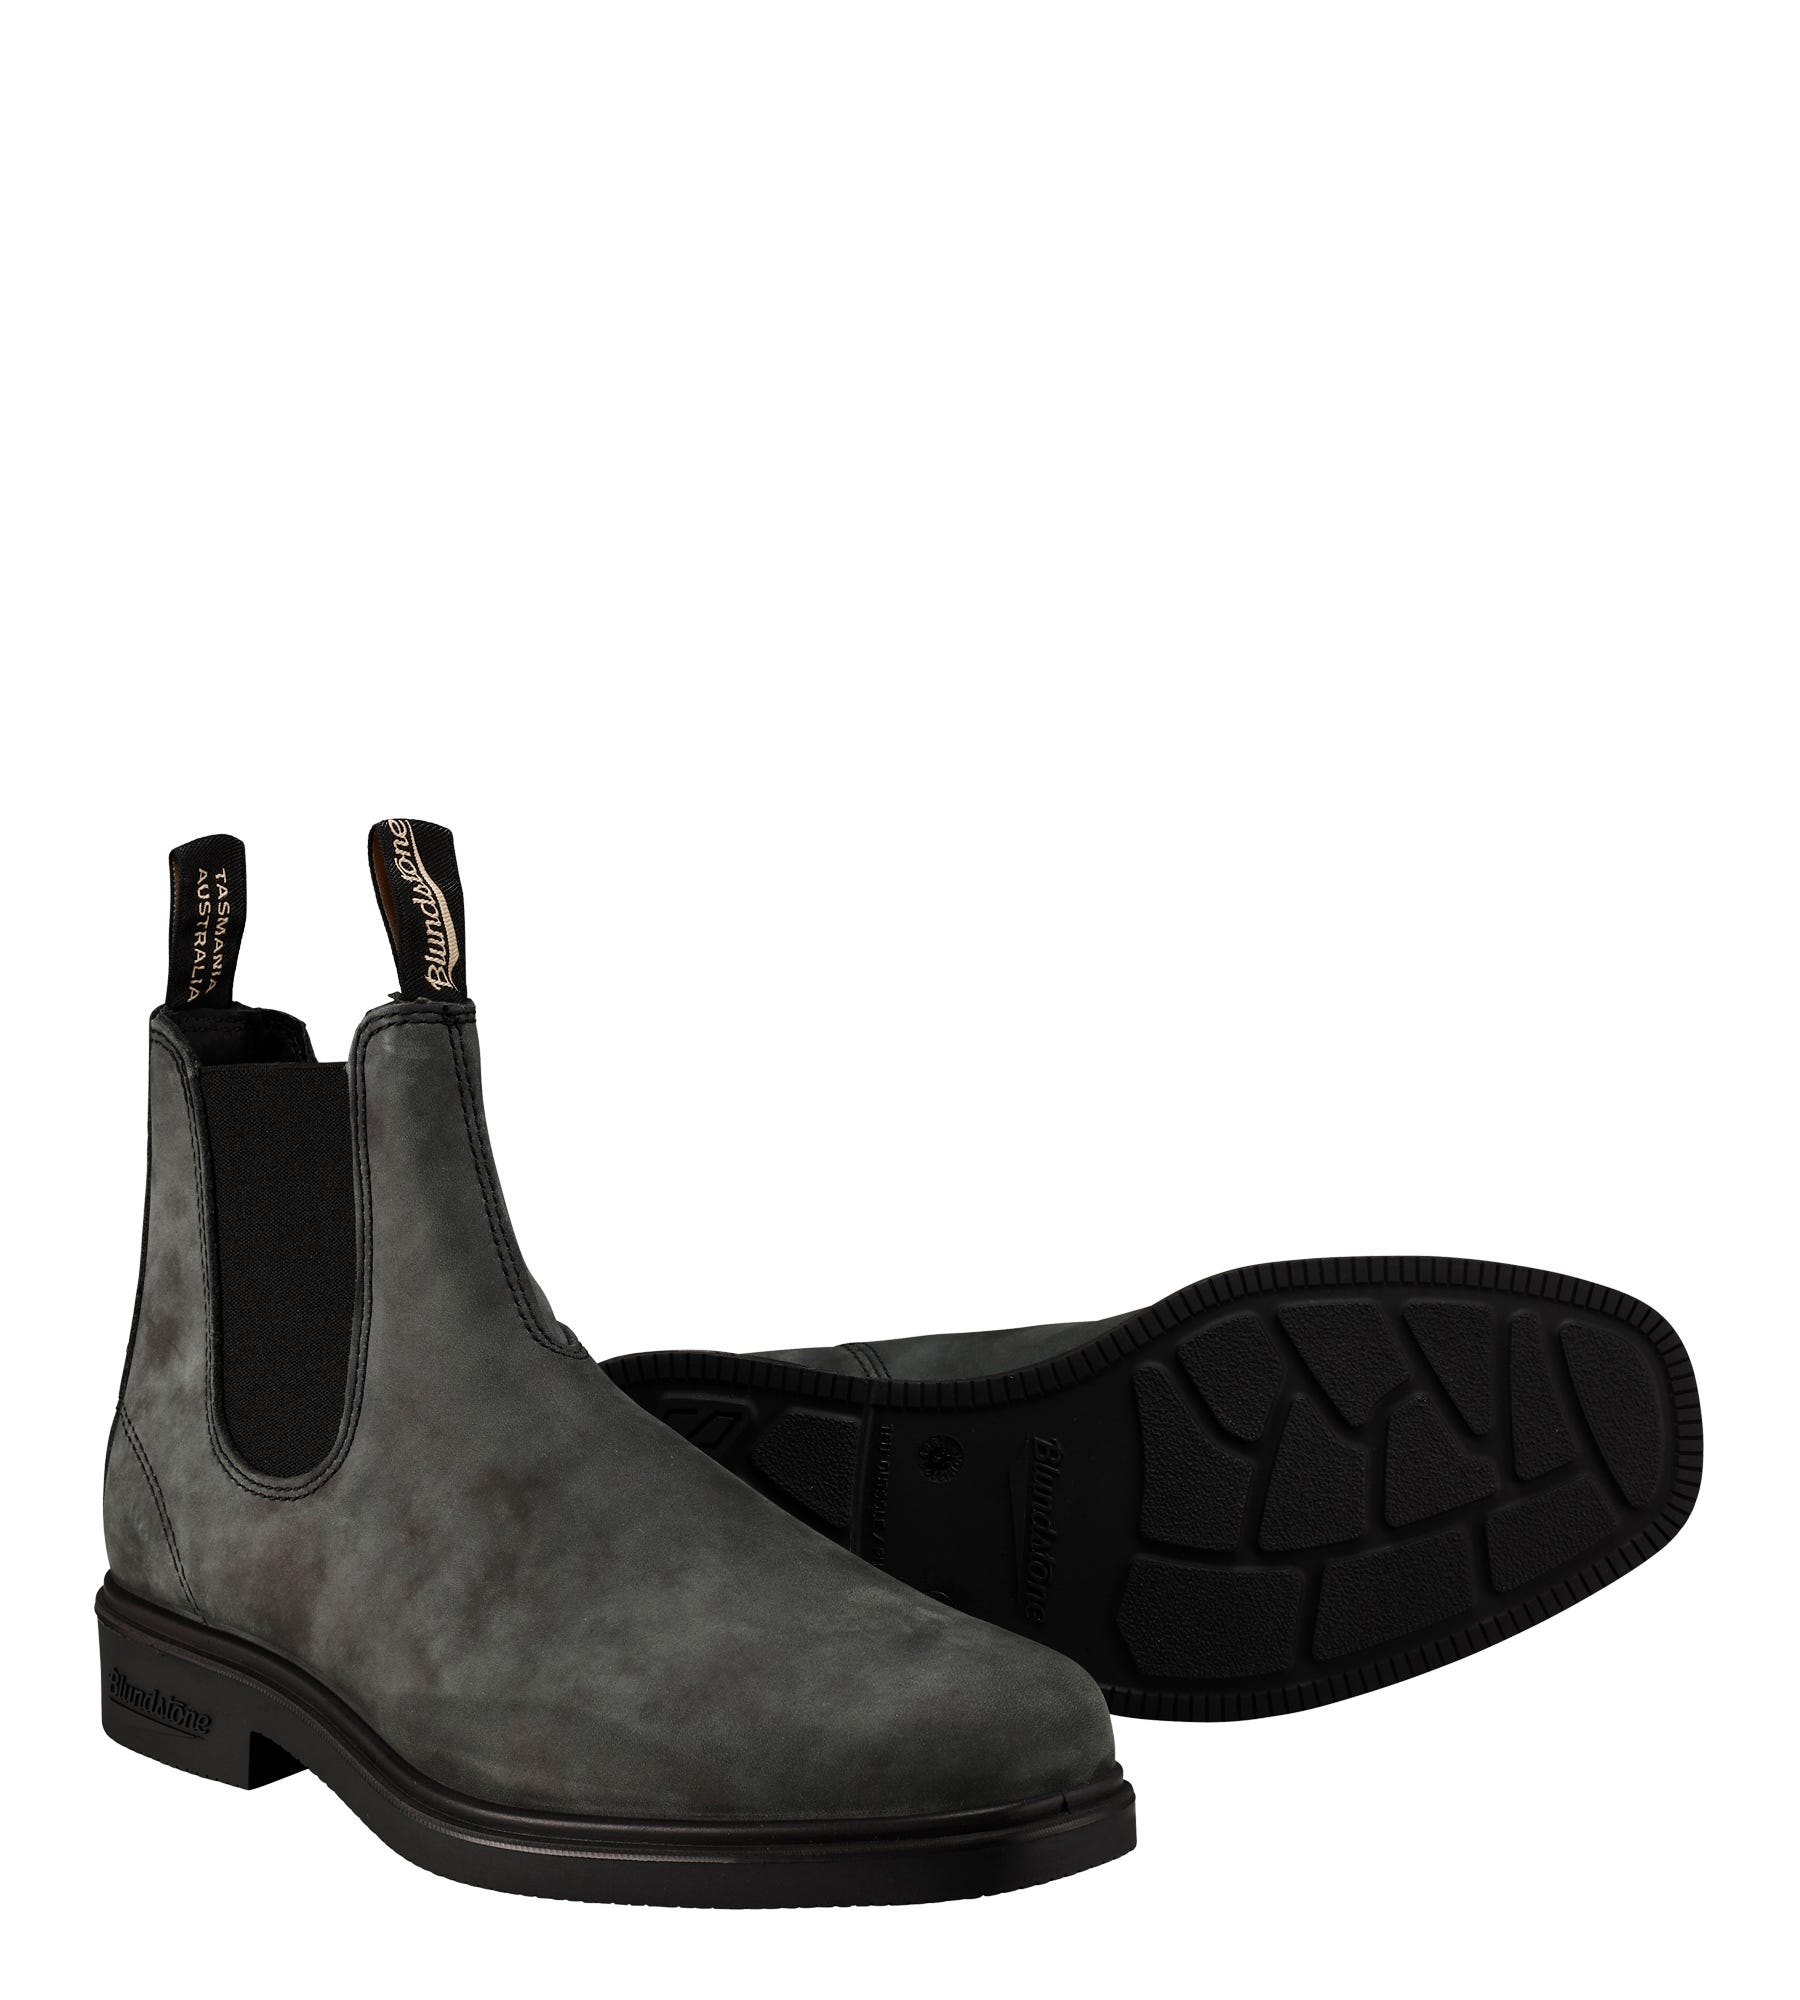 An image of Blundstone Boots #1308-41 (8)